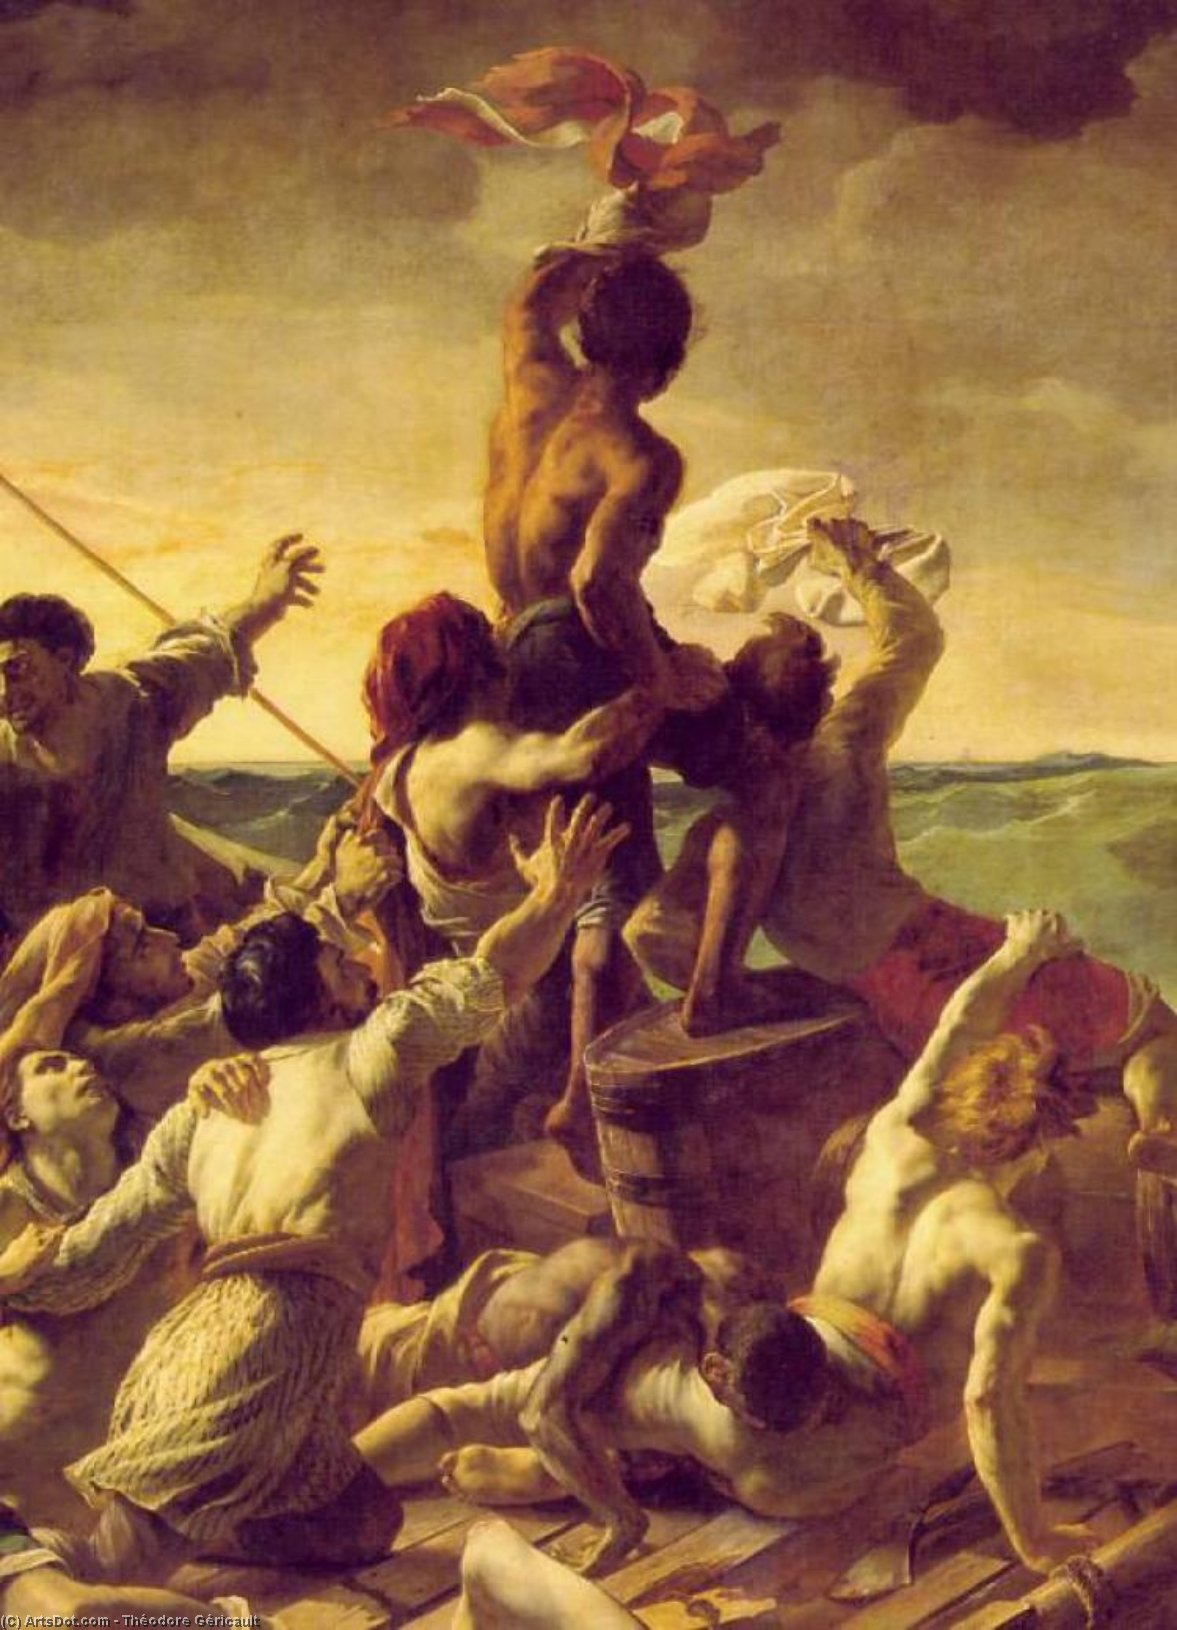 The Raft of the Medusa, Detalj,, 1819 by Jean-Louis André Théodore Géricault (1791-1824, France)